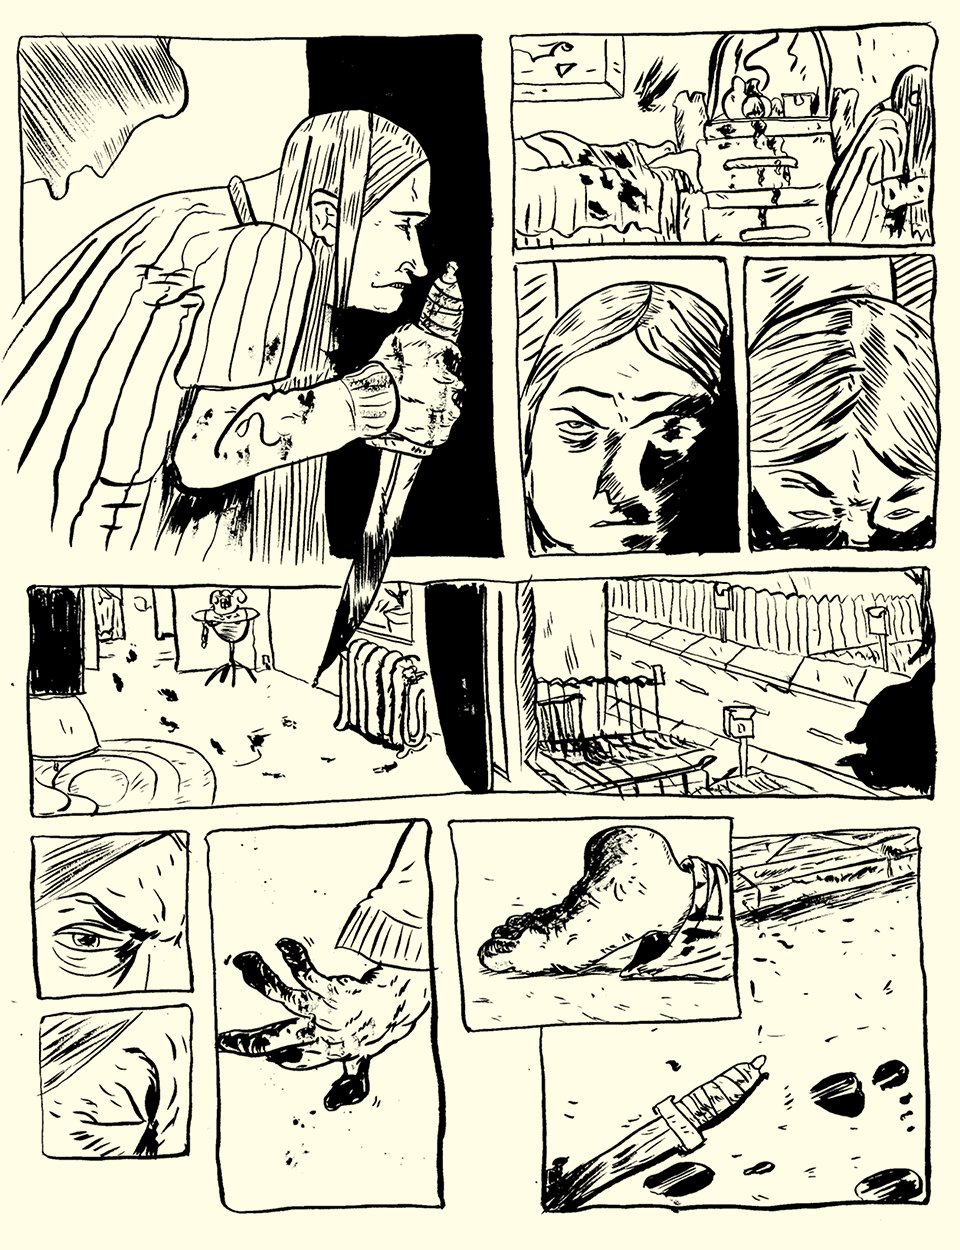 Page 1 by Roho with inks by Jamie Hibdon